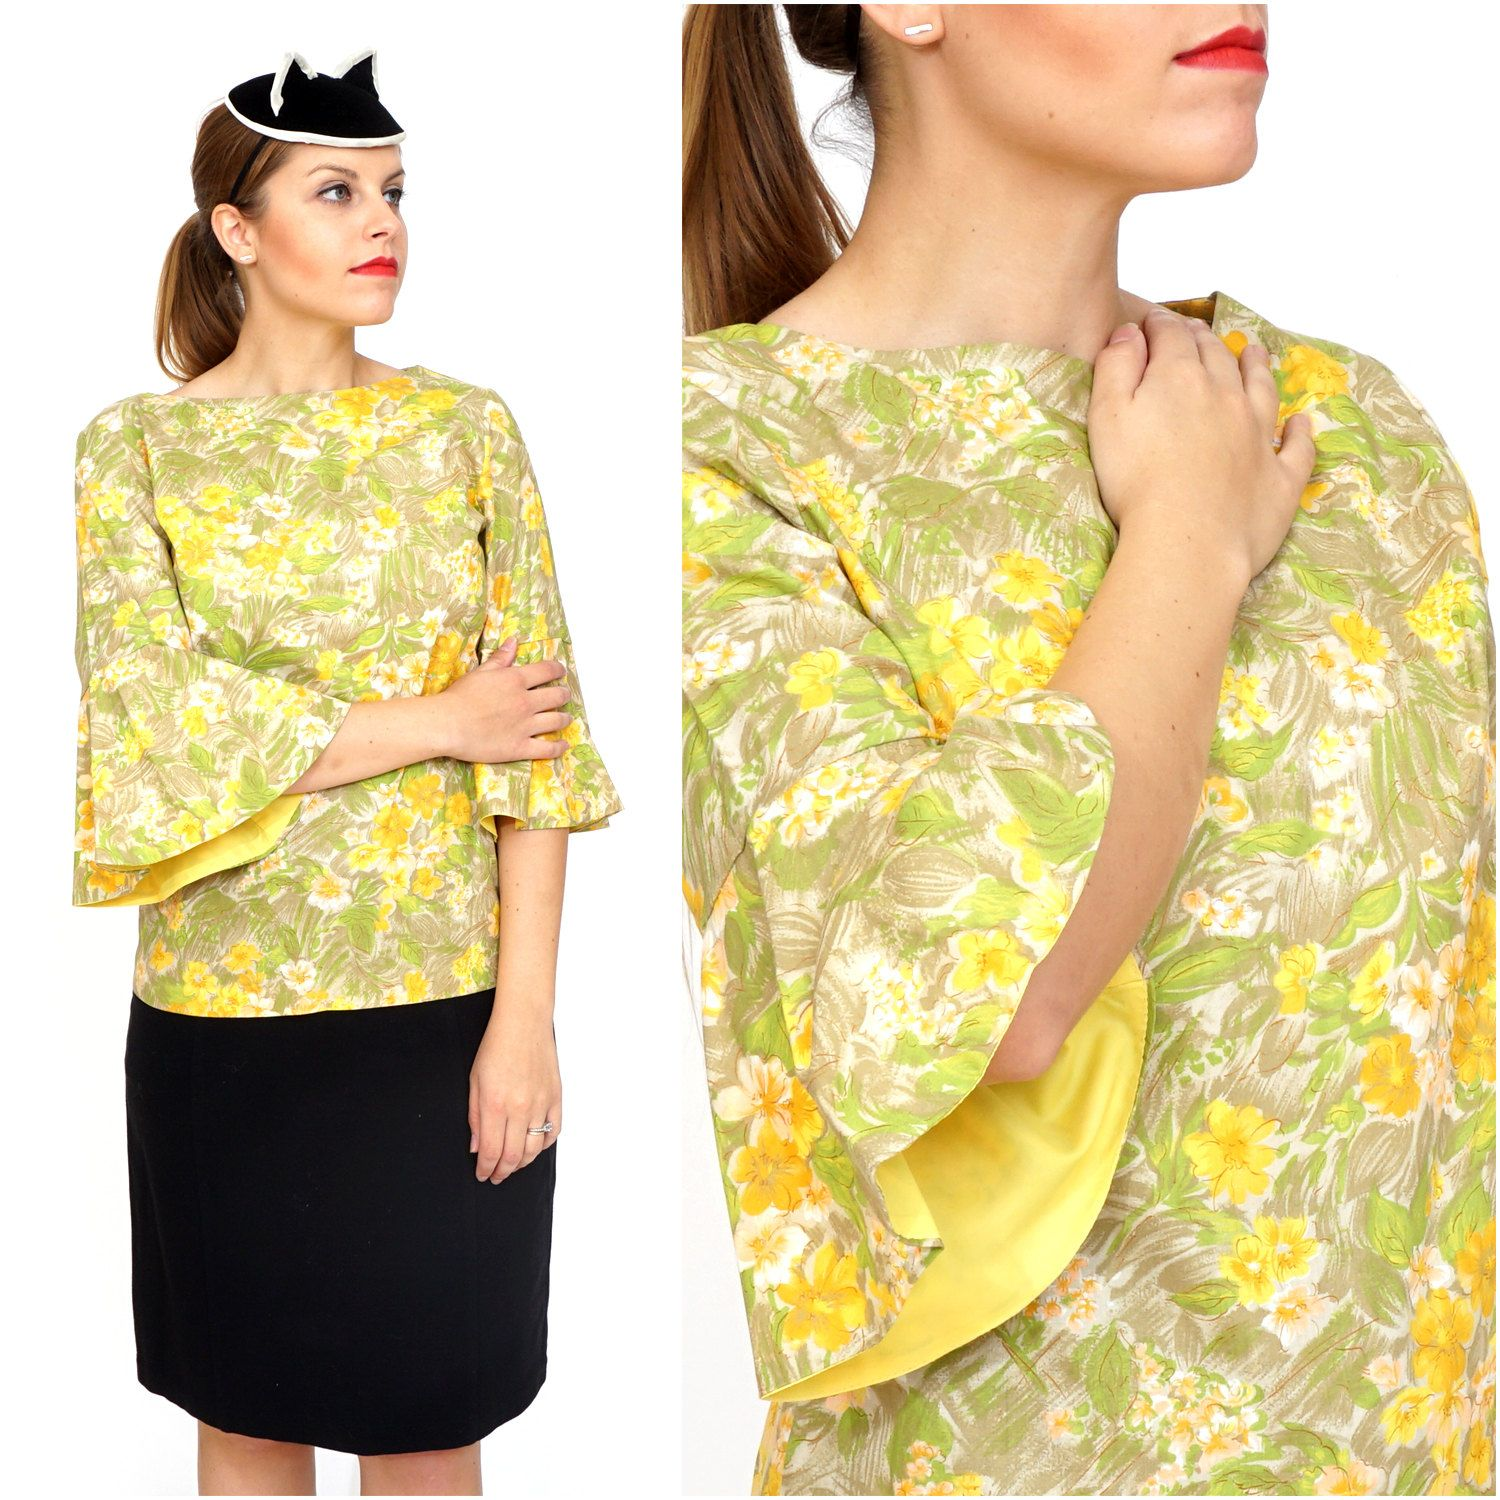 Vintage 1960s/70's Yellow Floral Print Top With Bell